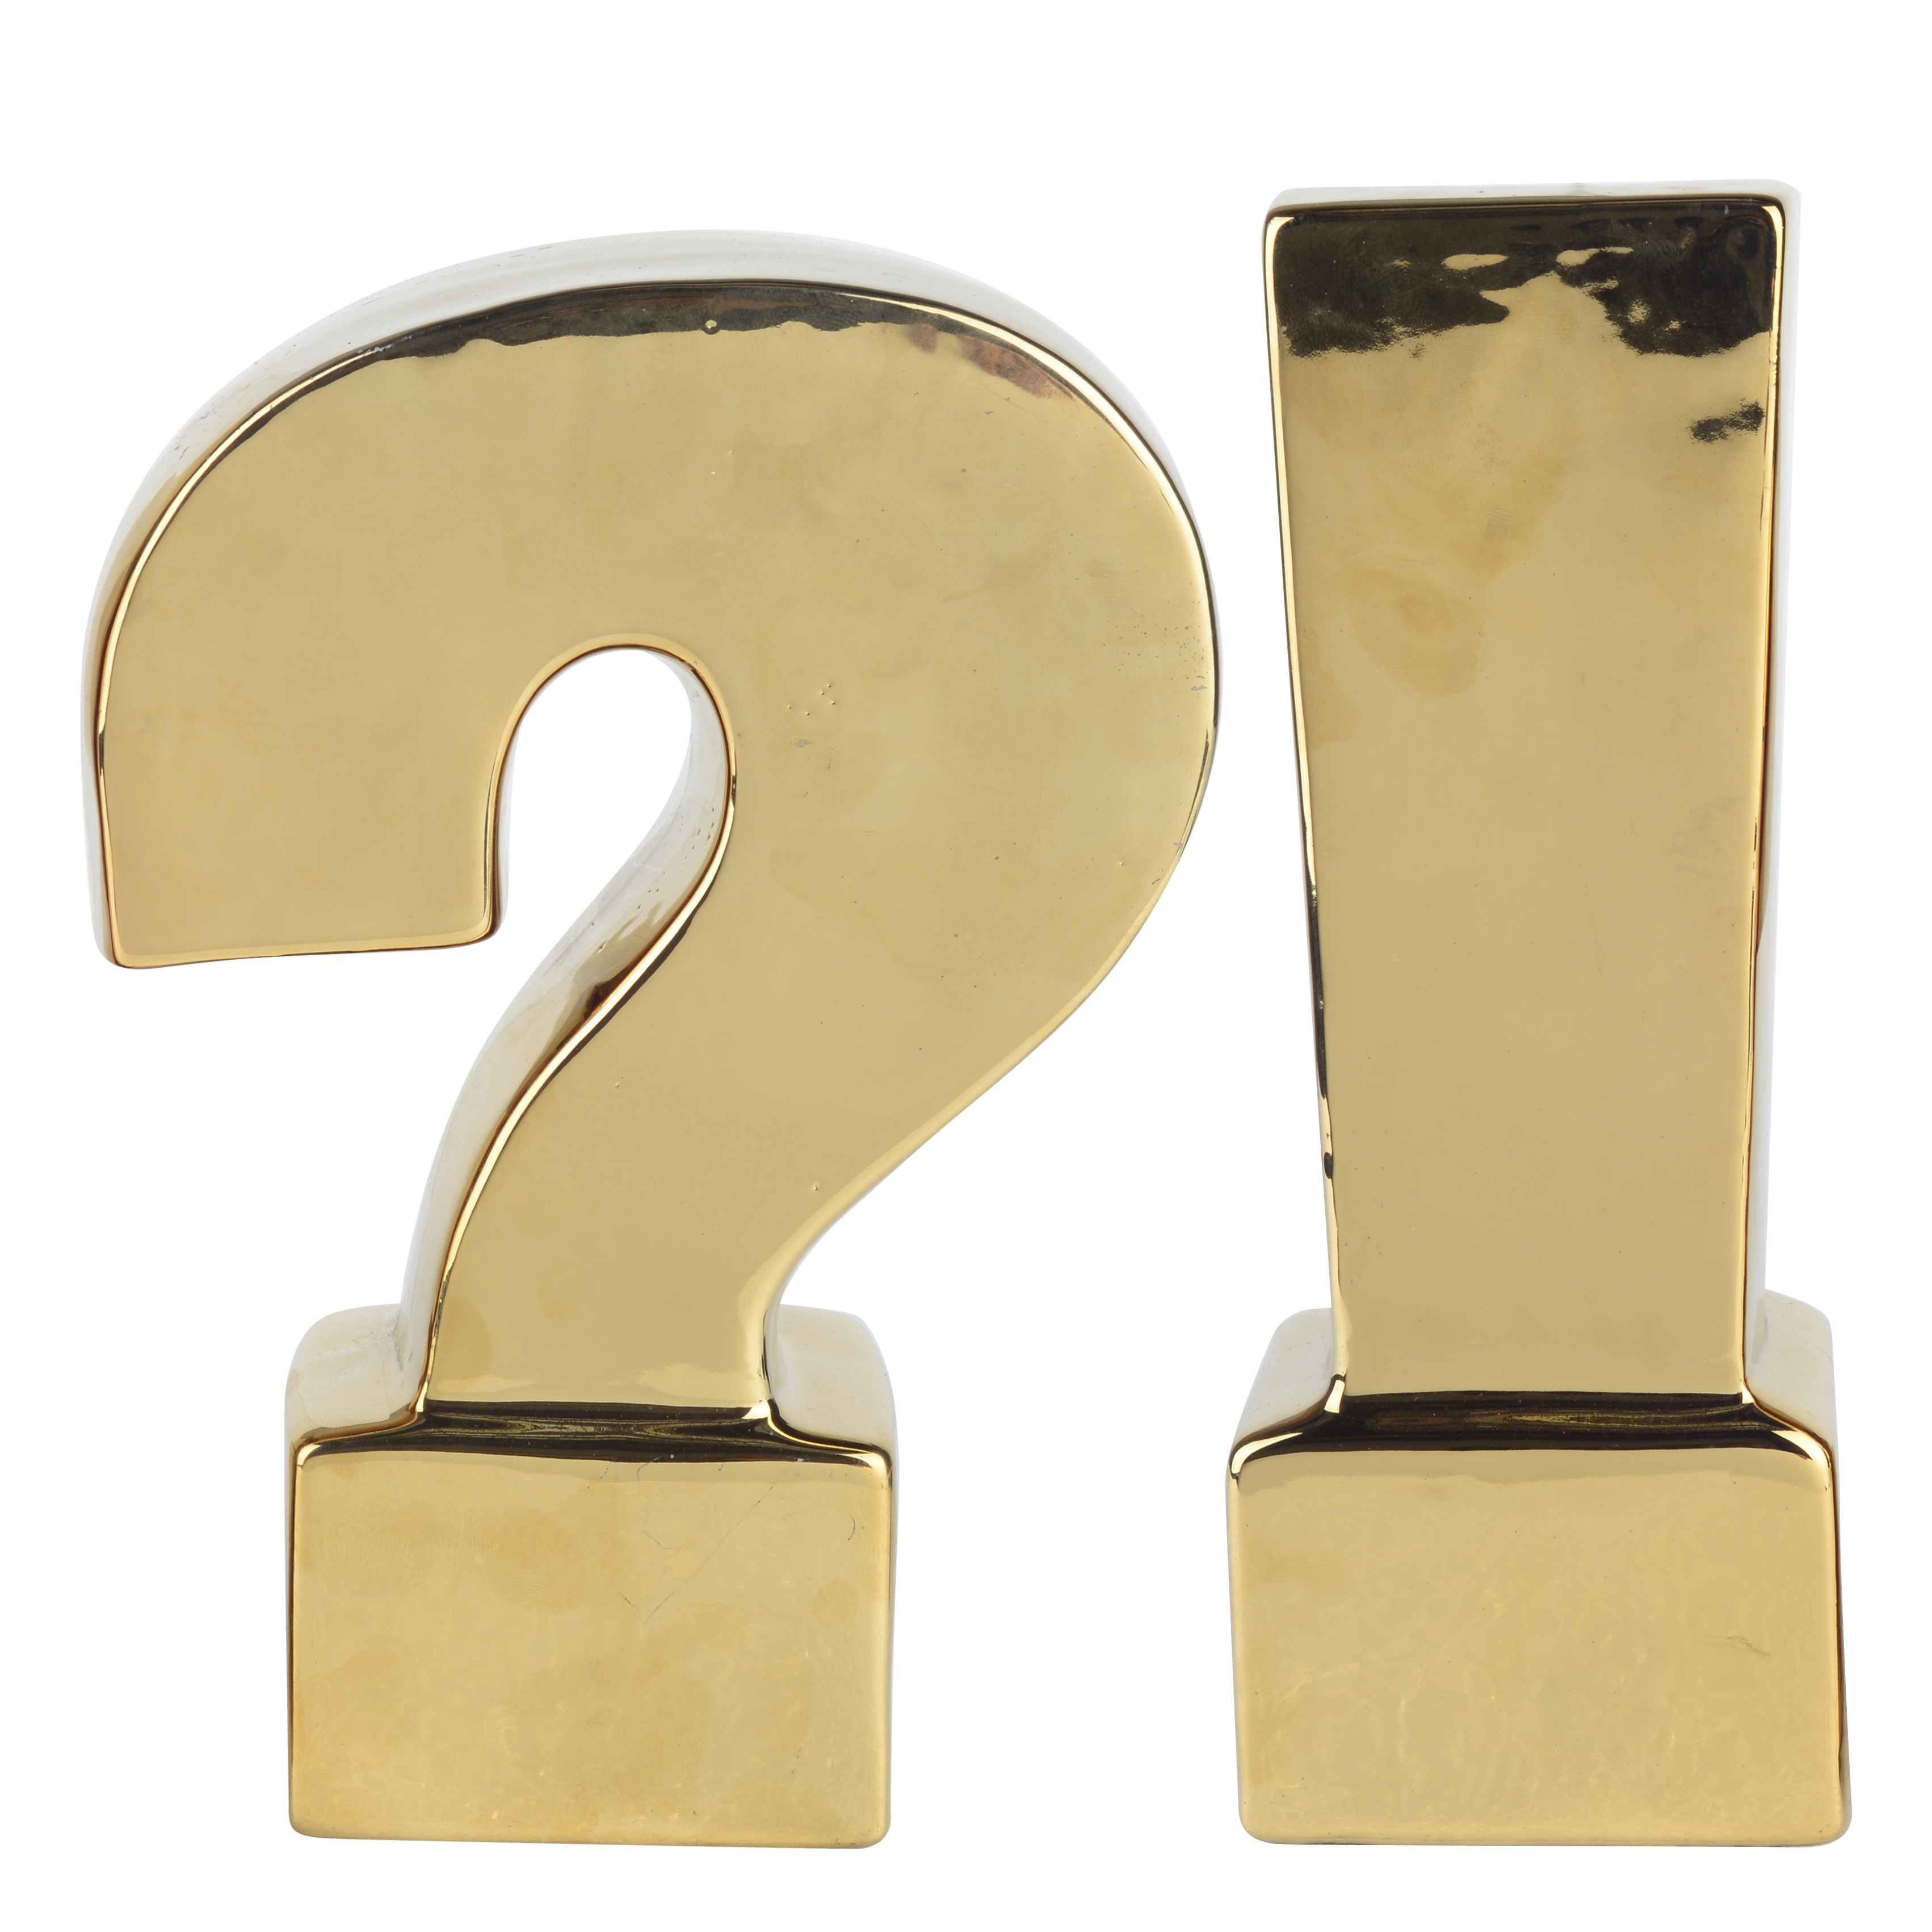 A&B Home Question & Exclamation Mark Bookends, Gold, Set of 2